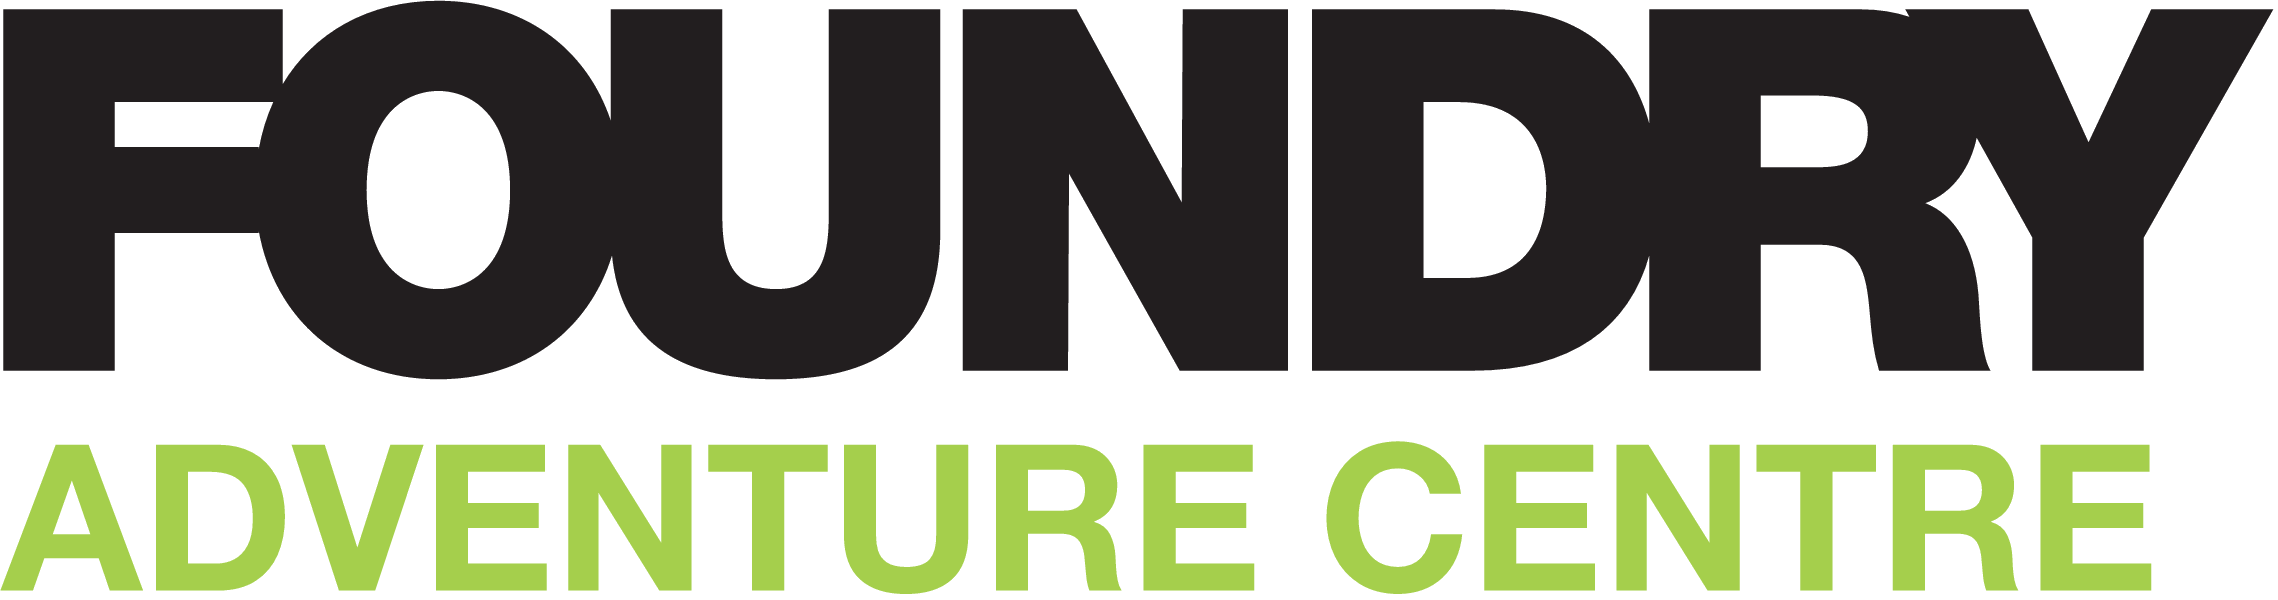 Foundry Adventure Centre - Group Accomodation and Activities in the Peak District National Park